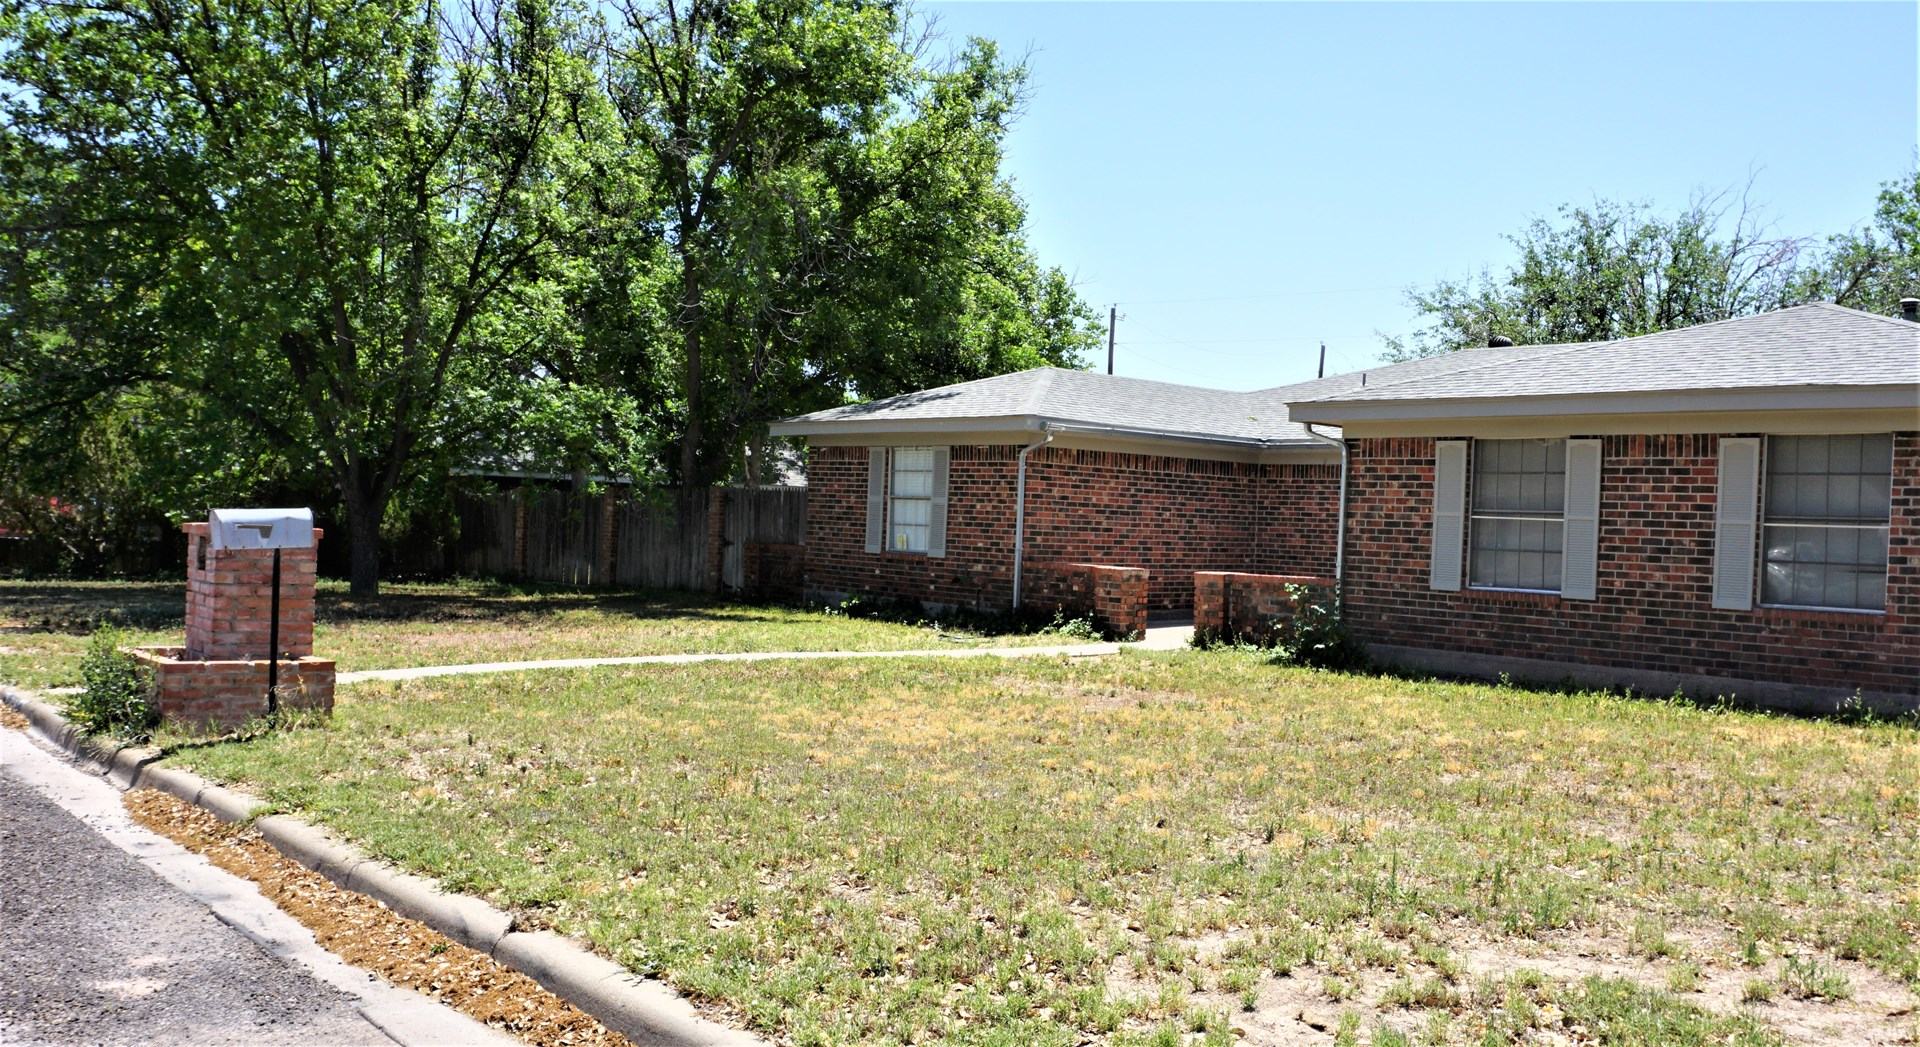 BRICK 4 BR 3 BA HOME - PRIME LOCATION - FORT STOCKTON, TX